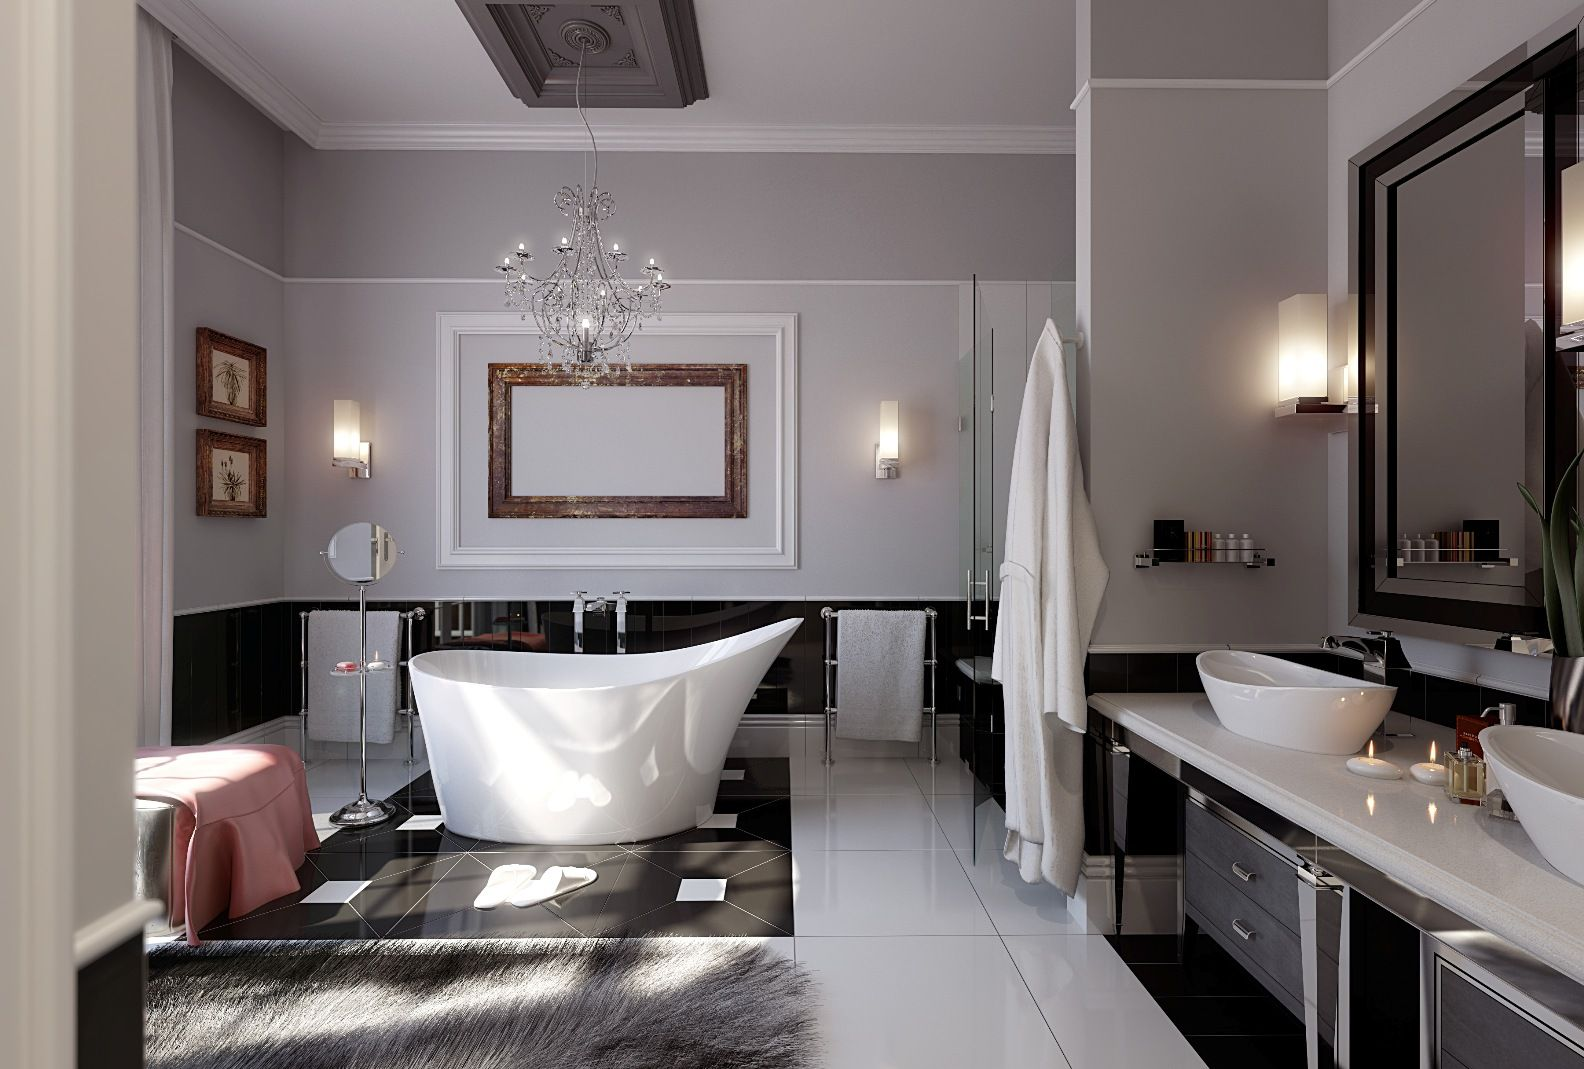 Deluxe bathroom this year    Feel the wilderness straight from your property and match the newest interior design trends    #nicedesign #inspirationalideas #bathroom    Visit to see more: http://homeinspirationideas.net/category/room-inspiration-ideas/bathroom